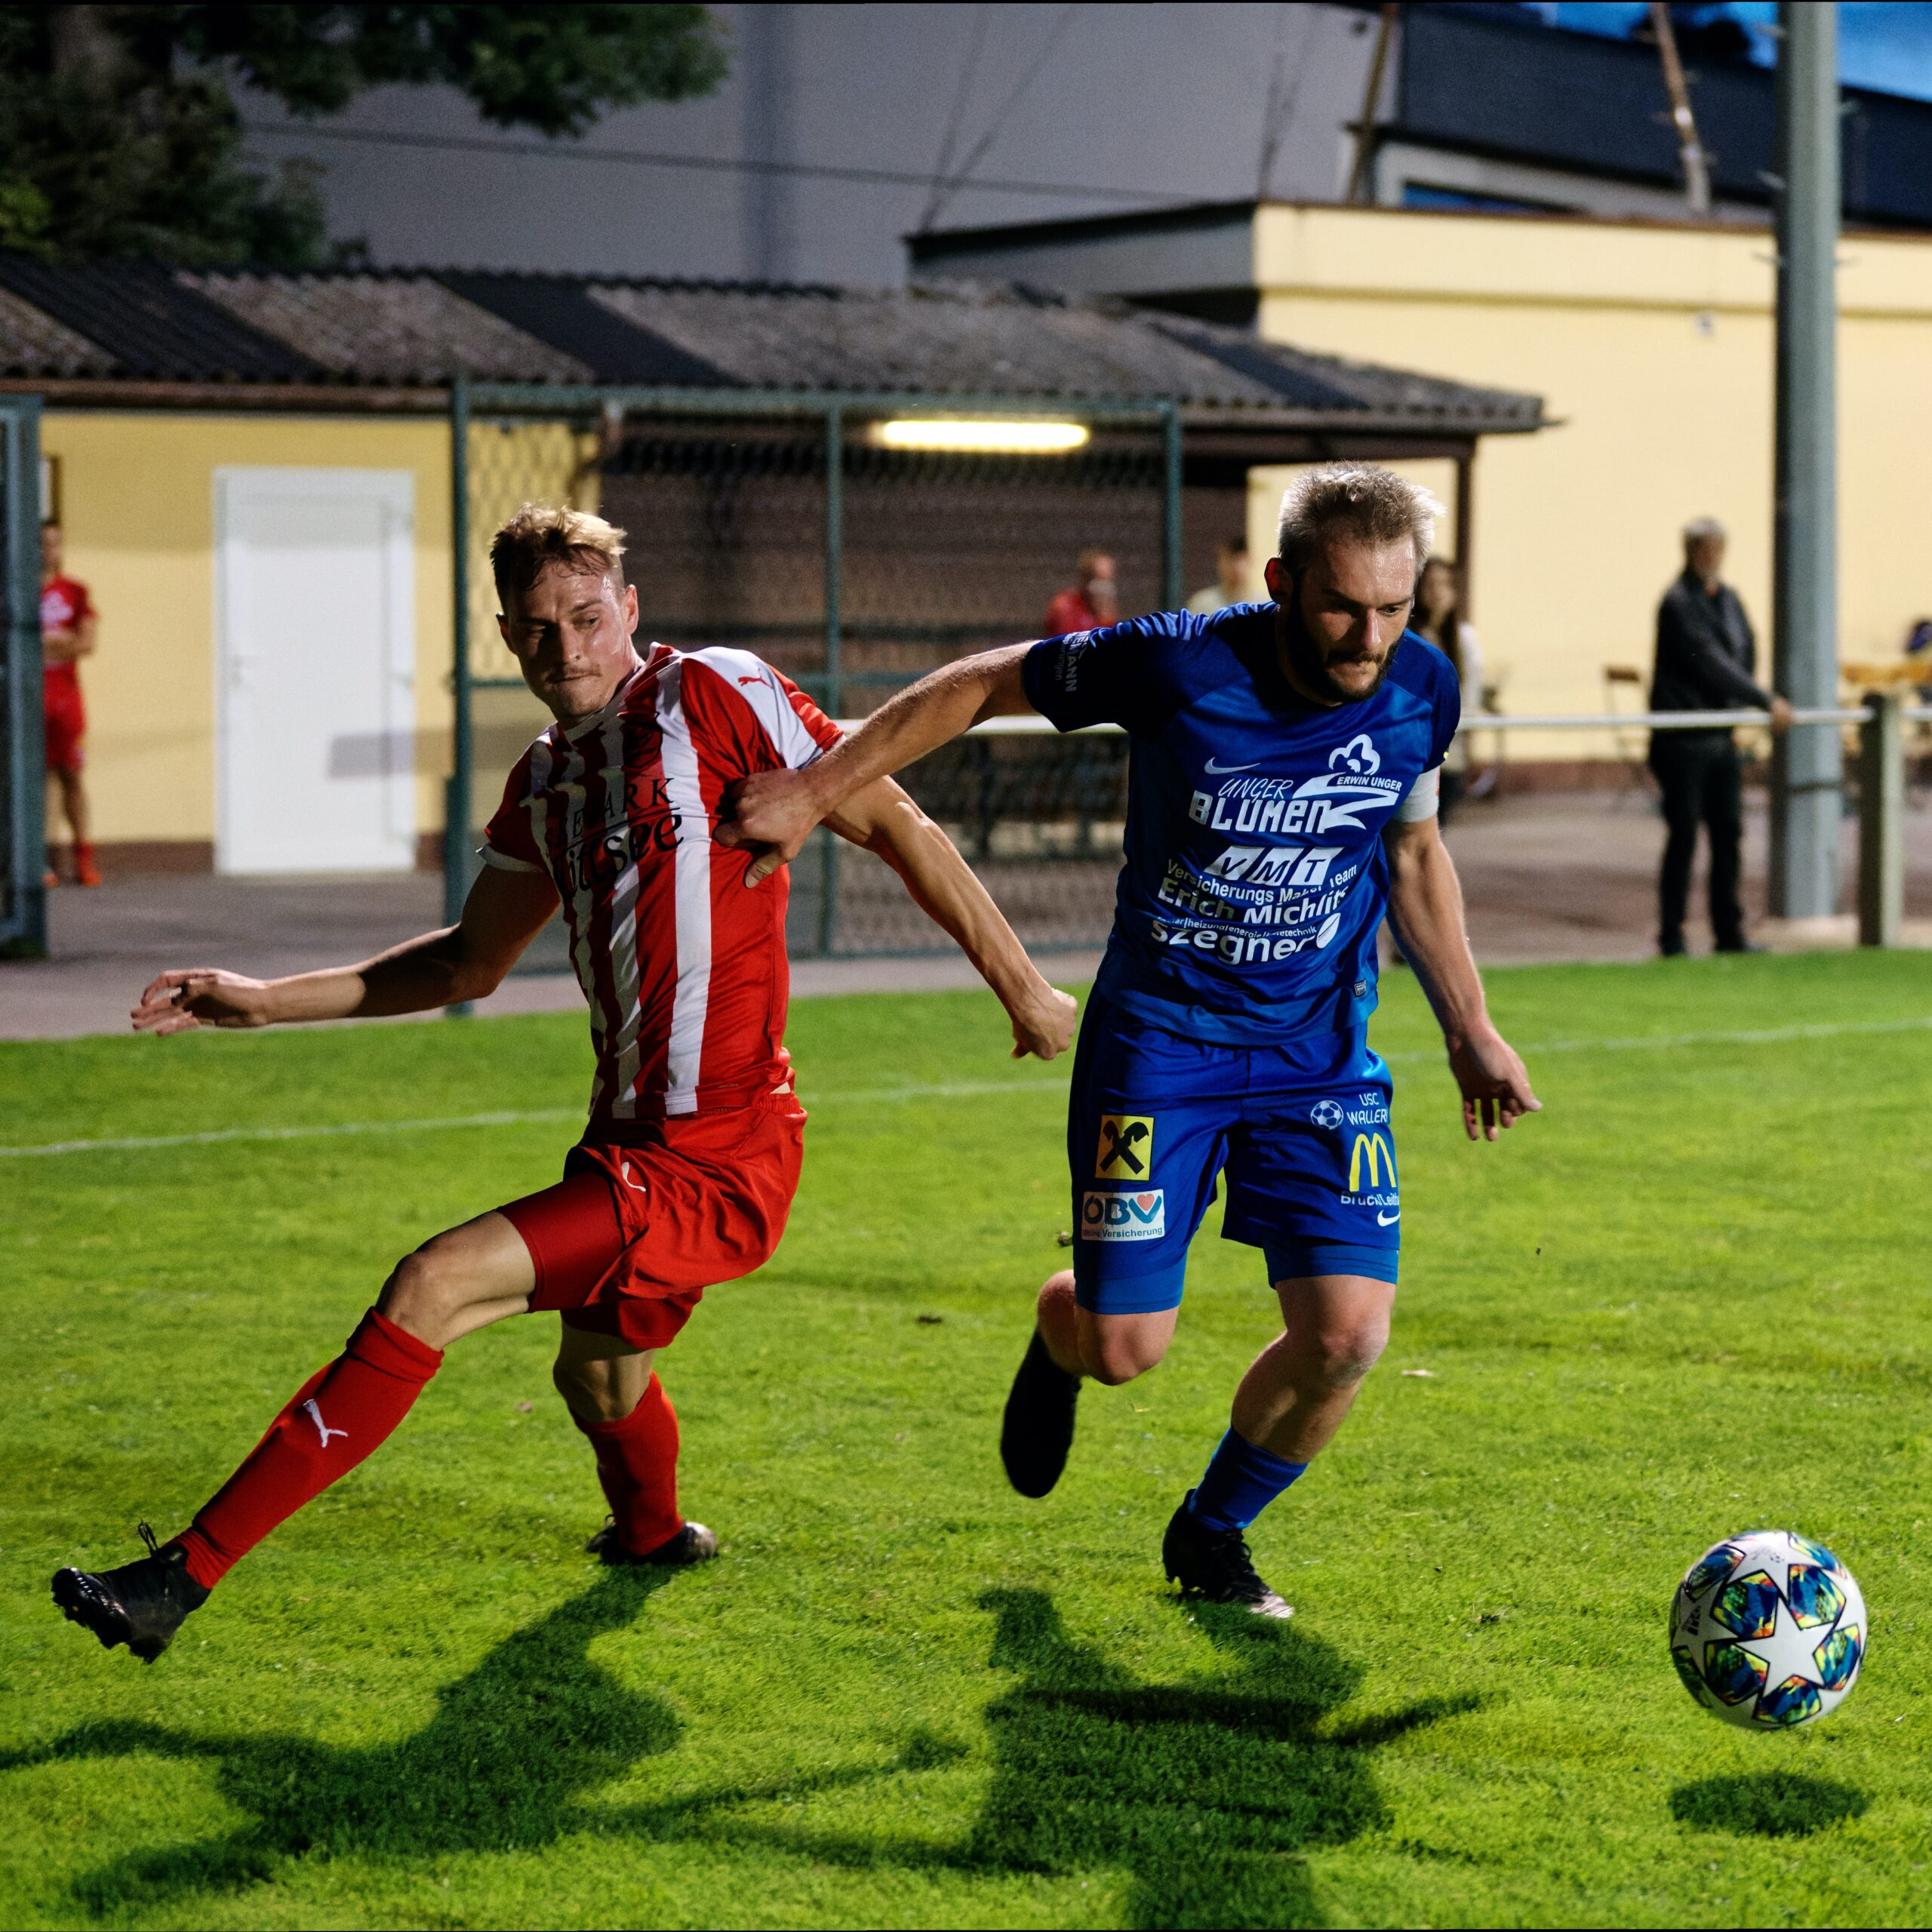 Simon Steiner and Jozef Sombat fight for the ball